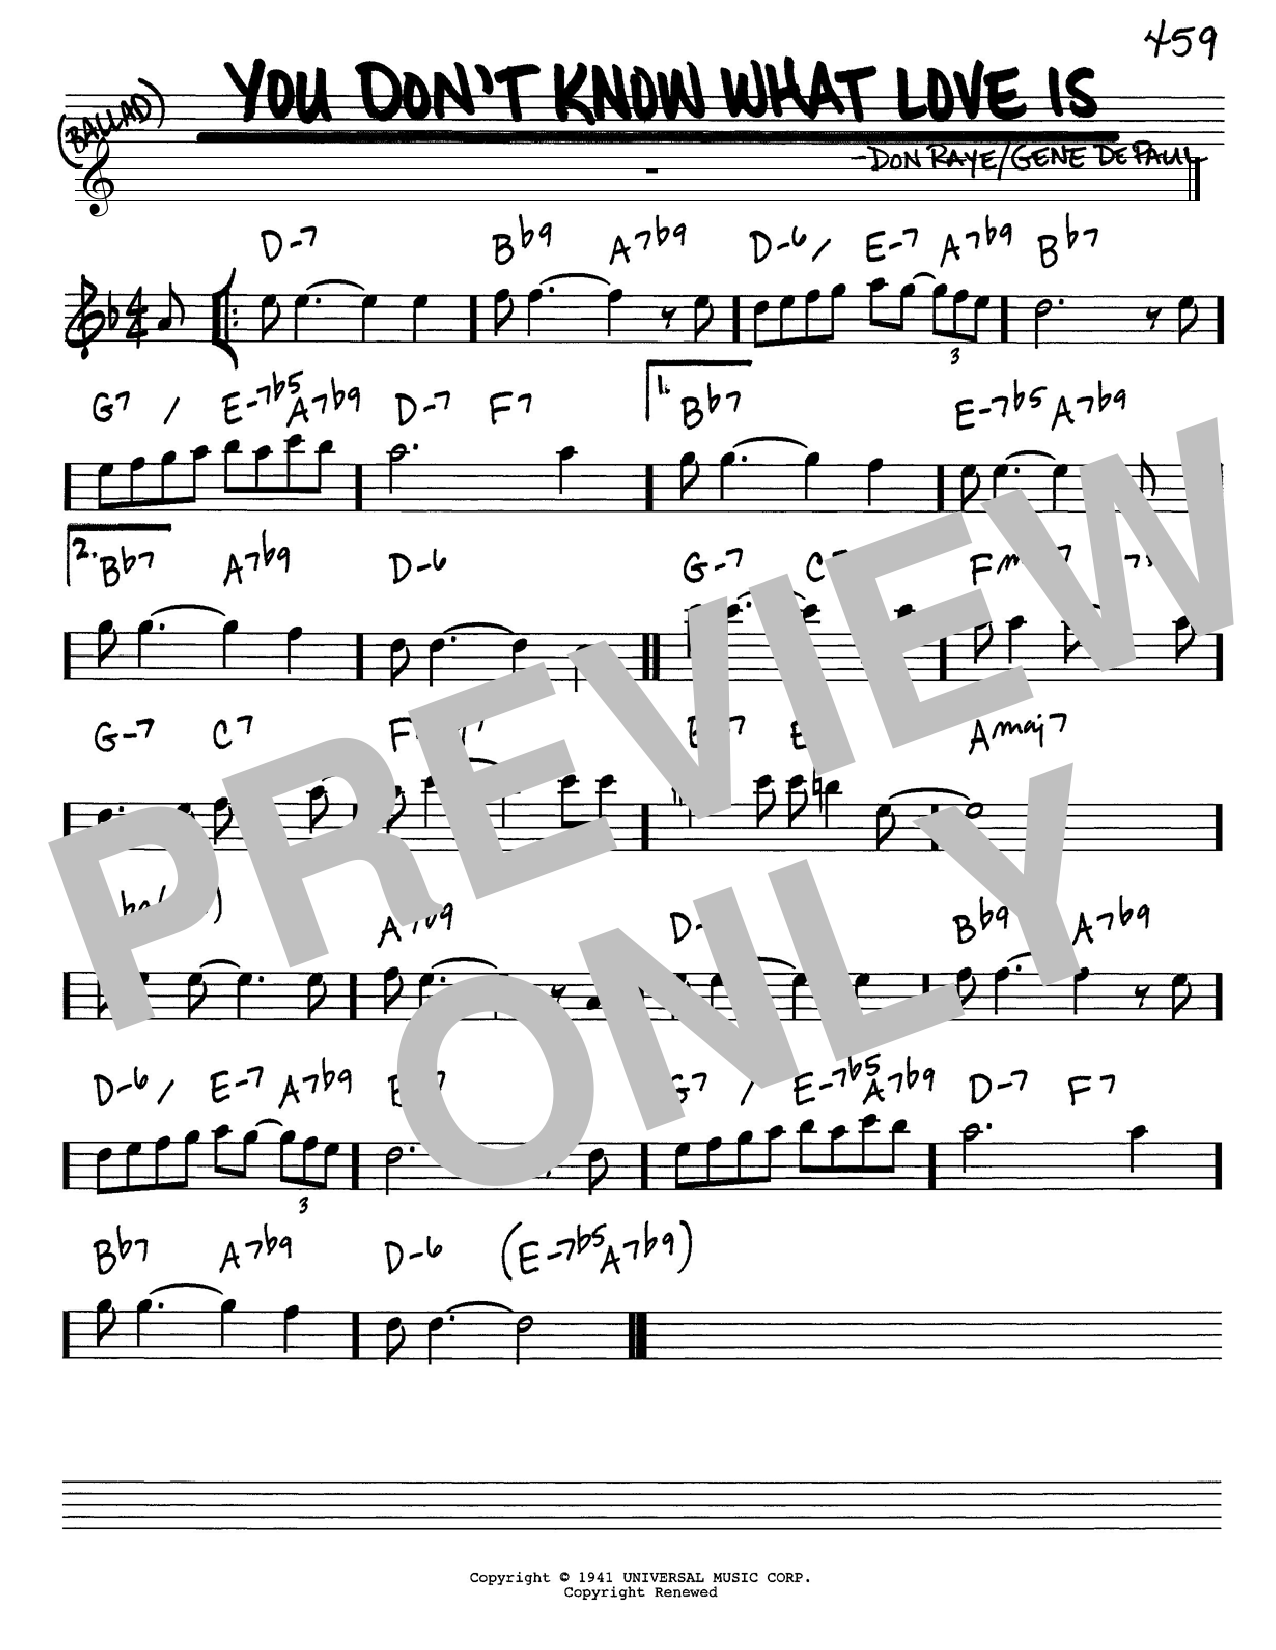 Carol Bruce You Don't Know What Love Is sheet music notes and chords. Download Printable PDF.